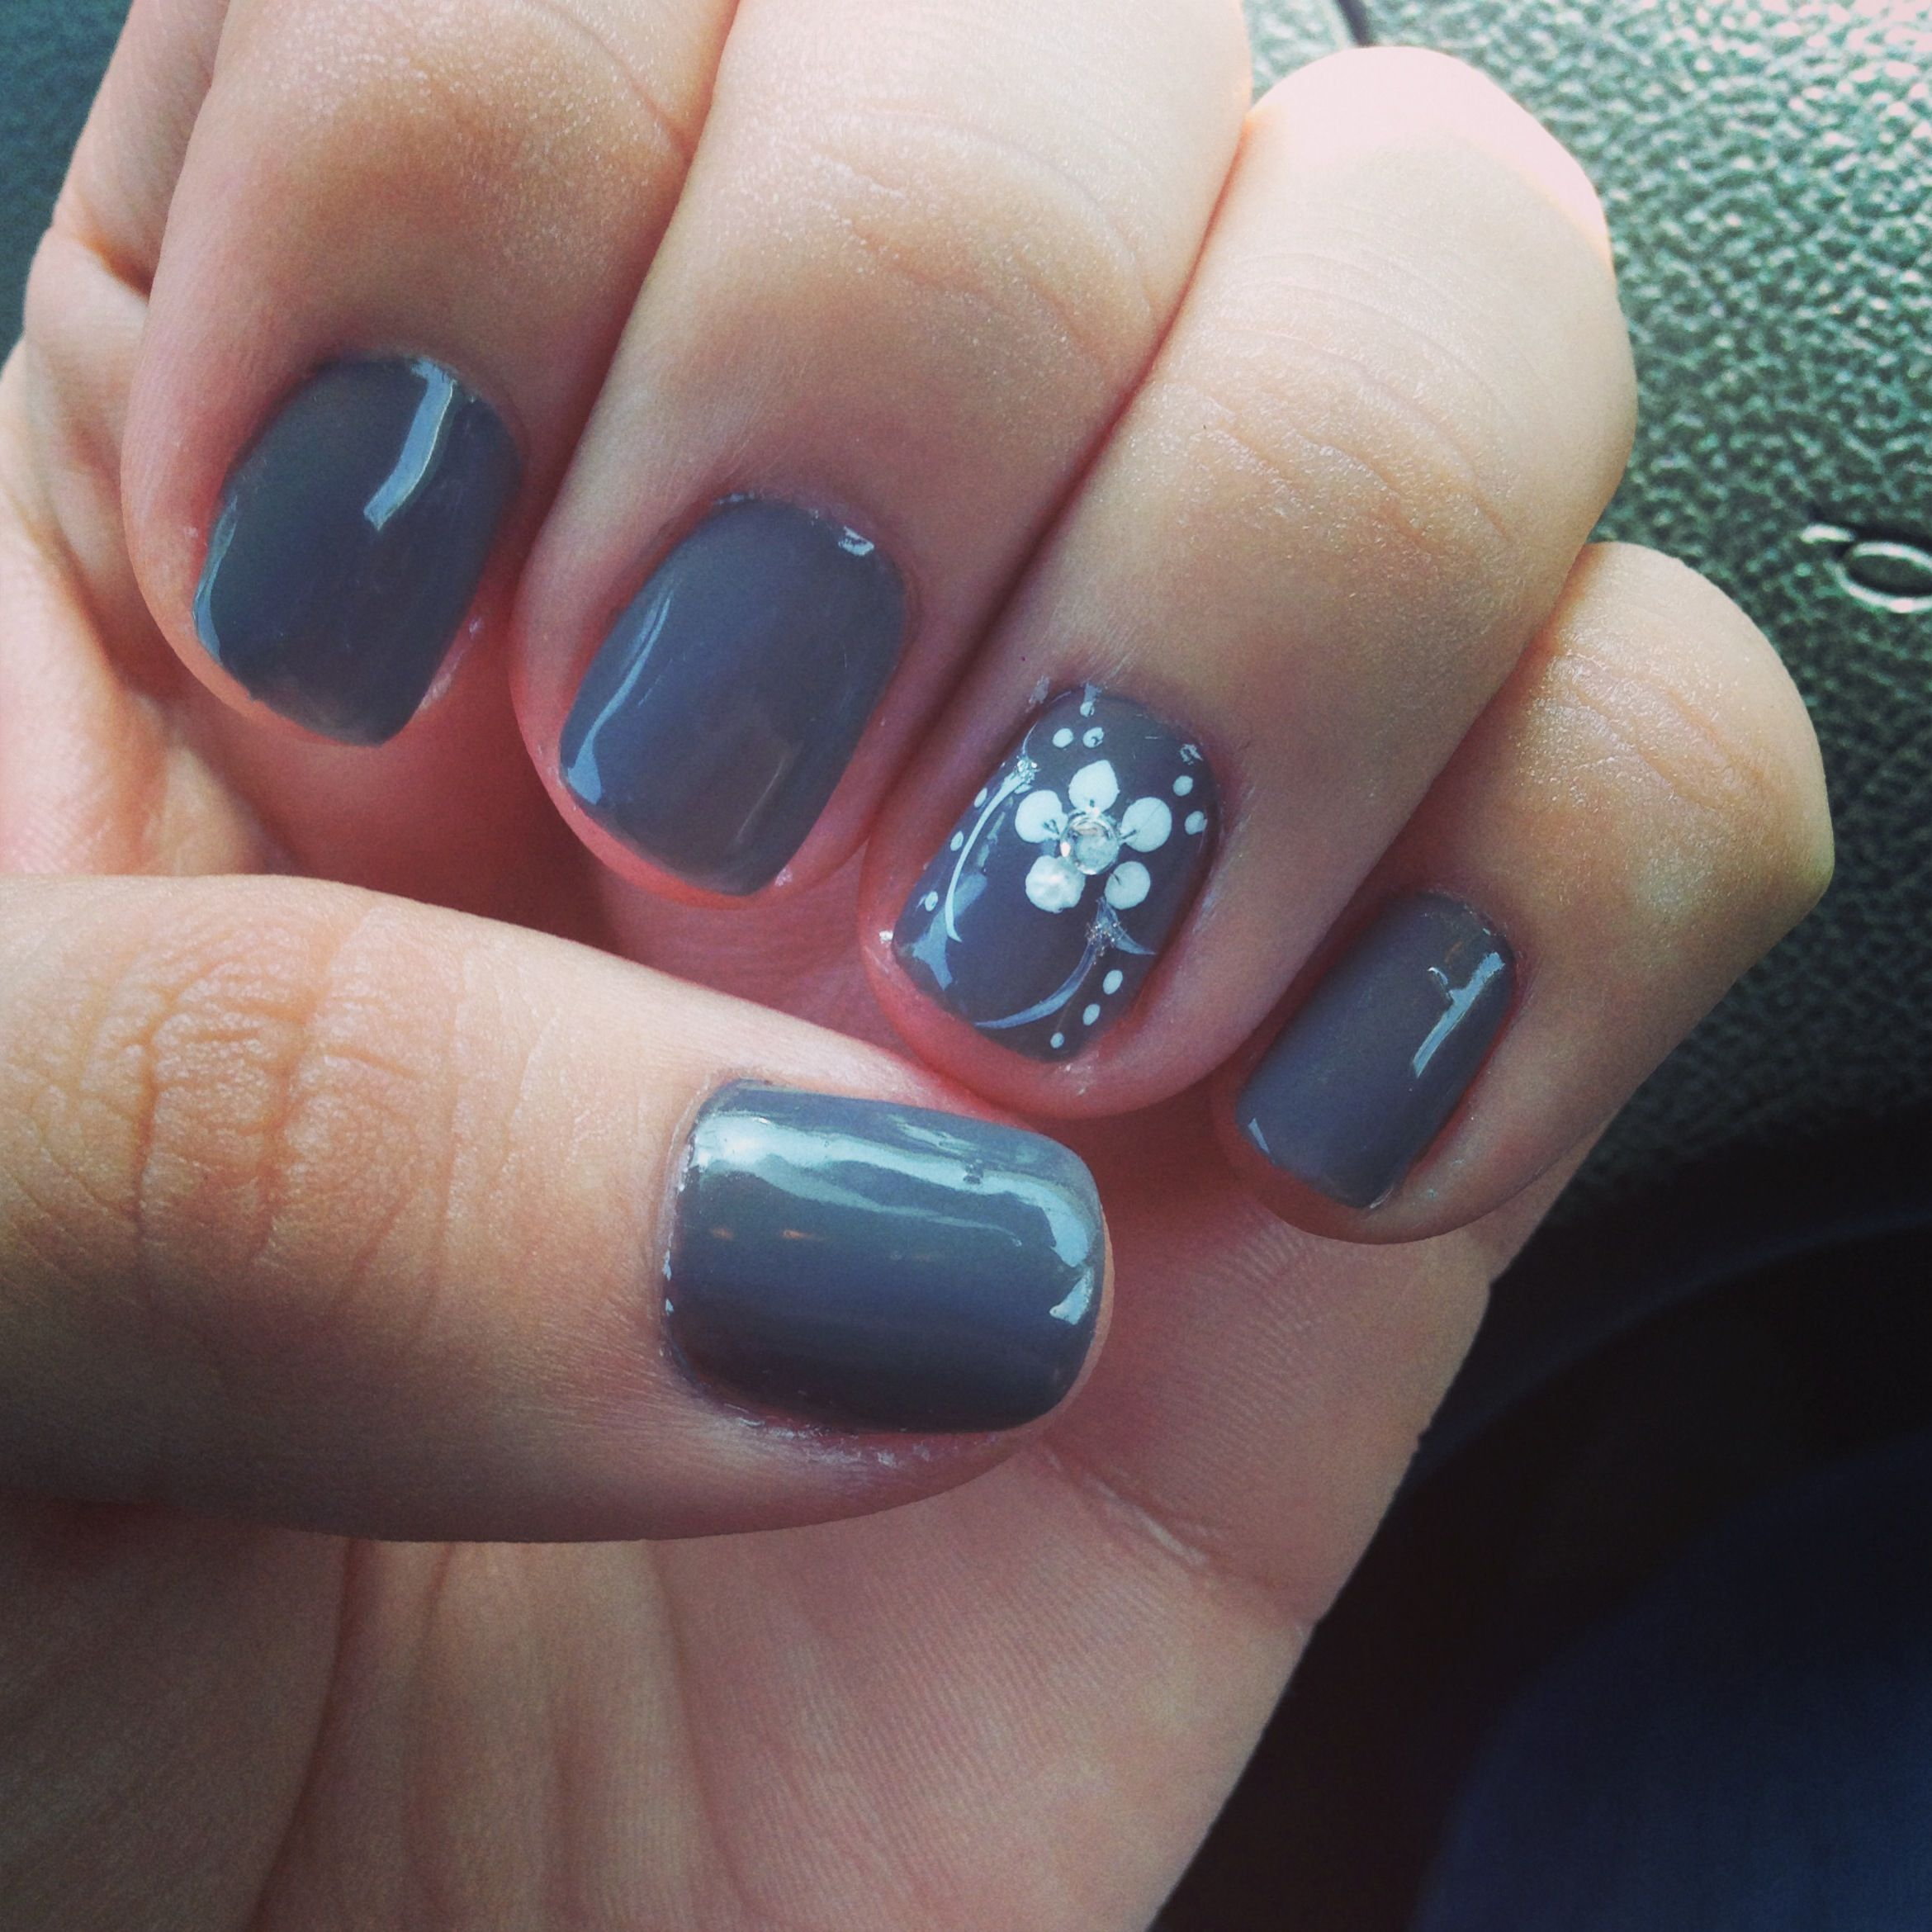 Gray gel manicure with white accent design | Nails | Pinterest | Gel ...